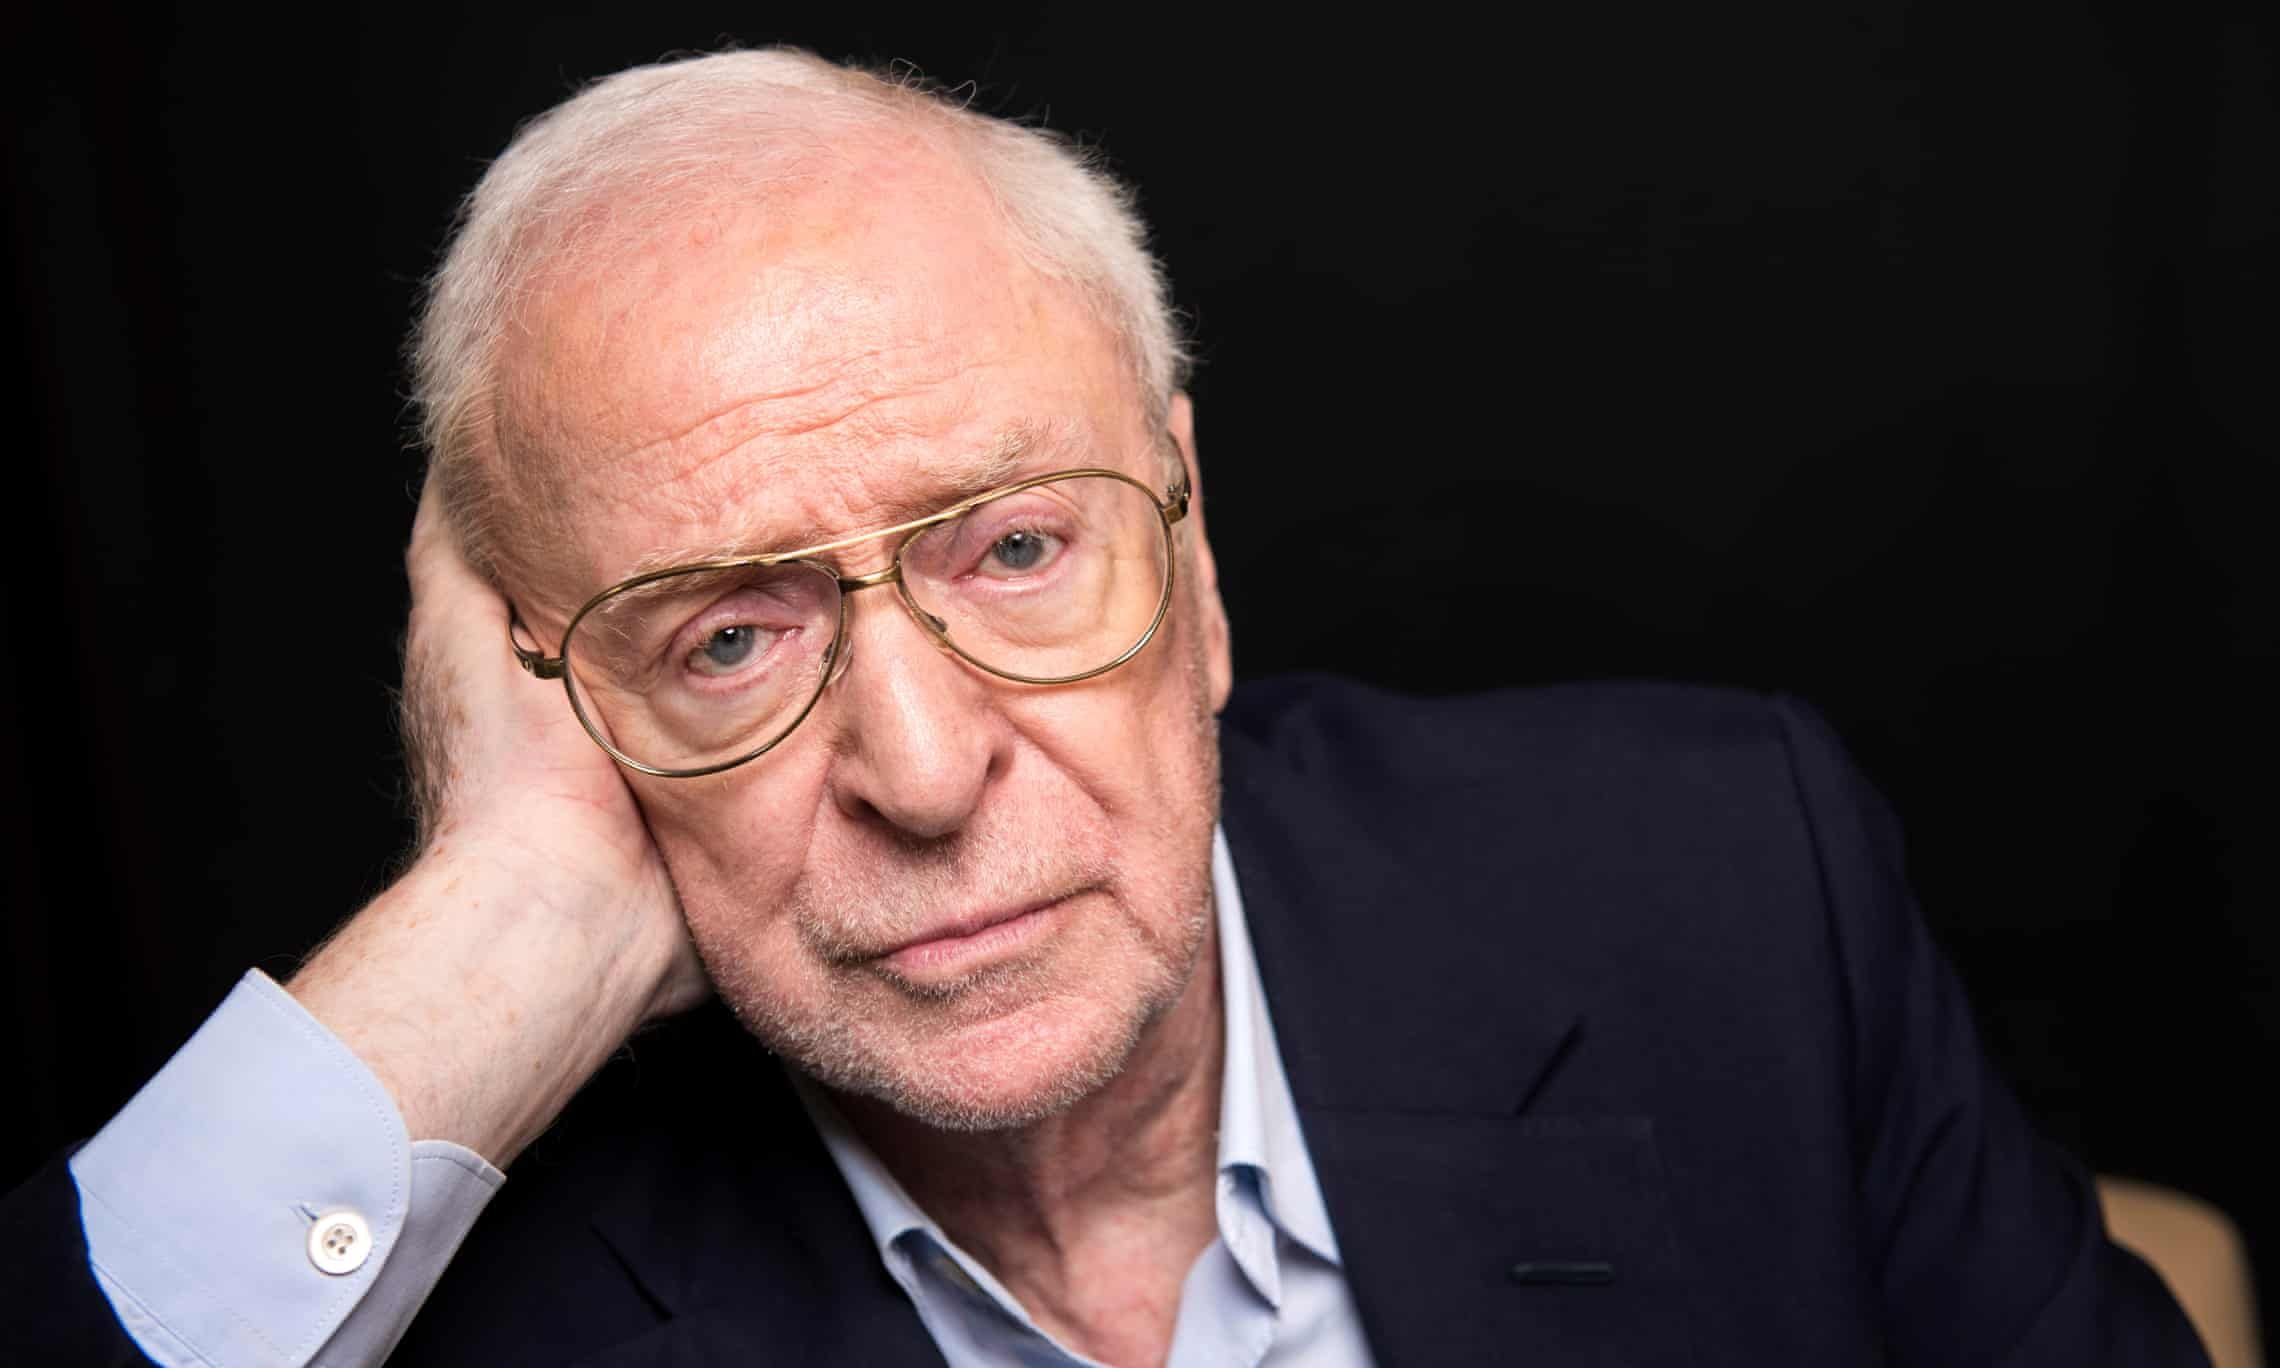 Michael Caine 'Crime comes from poverty, and those